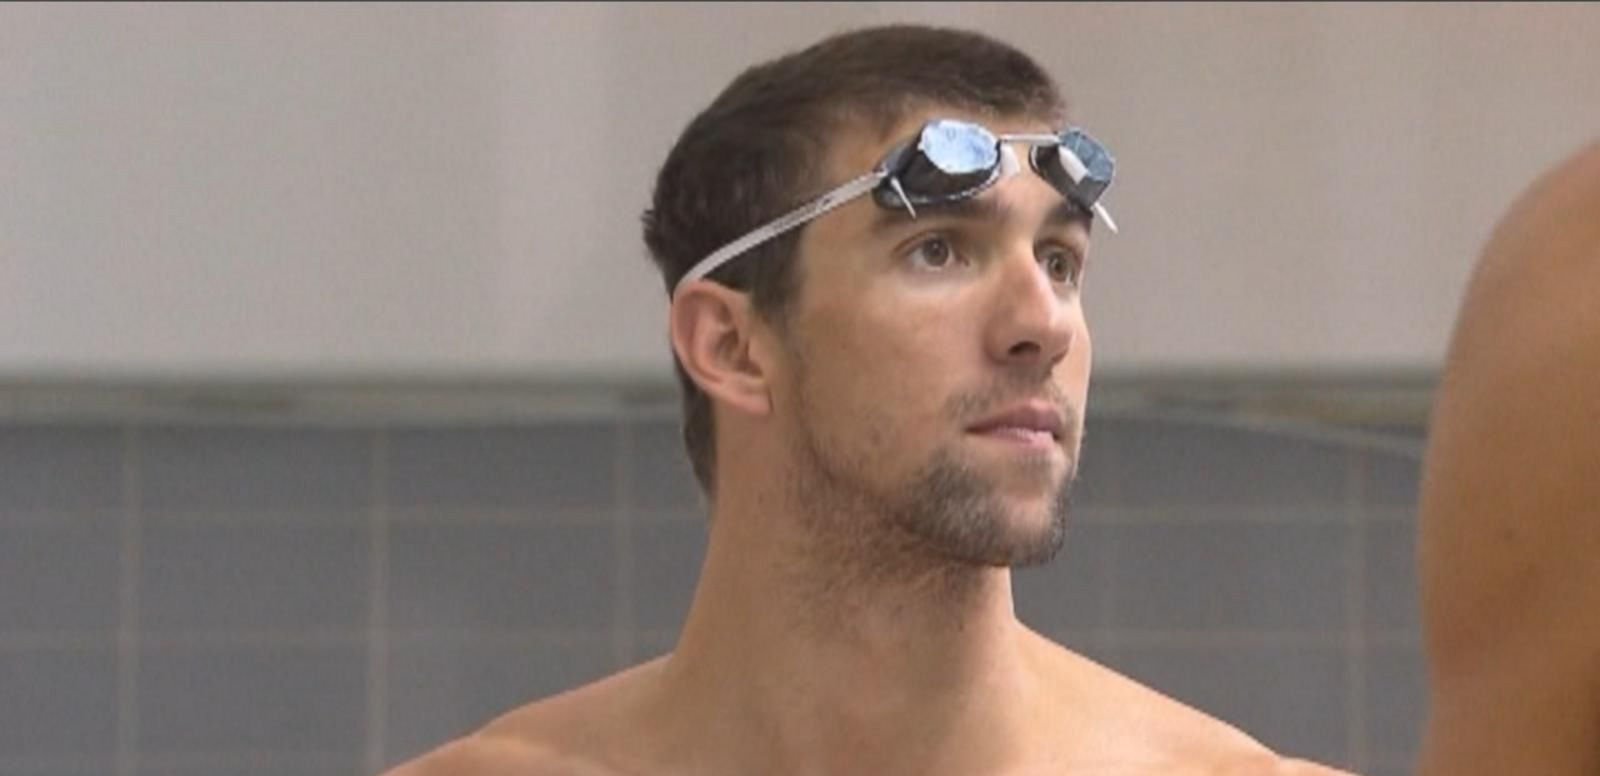 VIDEO: Olympic gold medal swimmer Michael Phelps is sentenced to a year and a half probation for a drunken driving arrest.